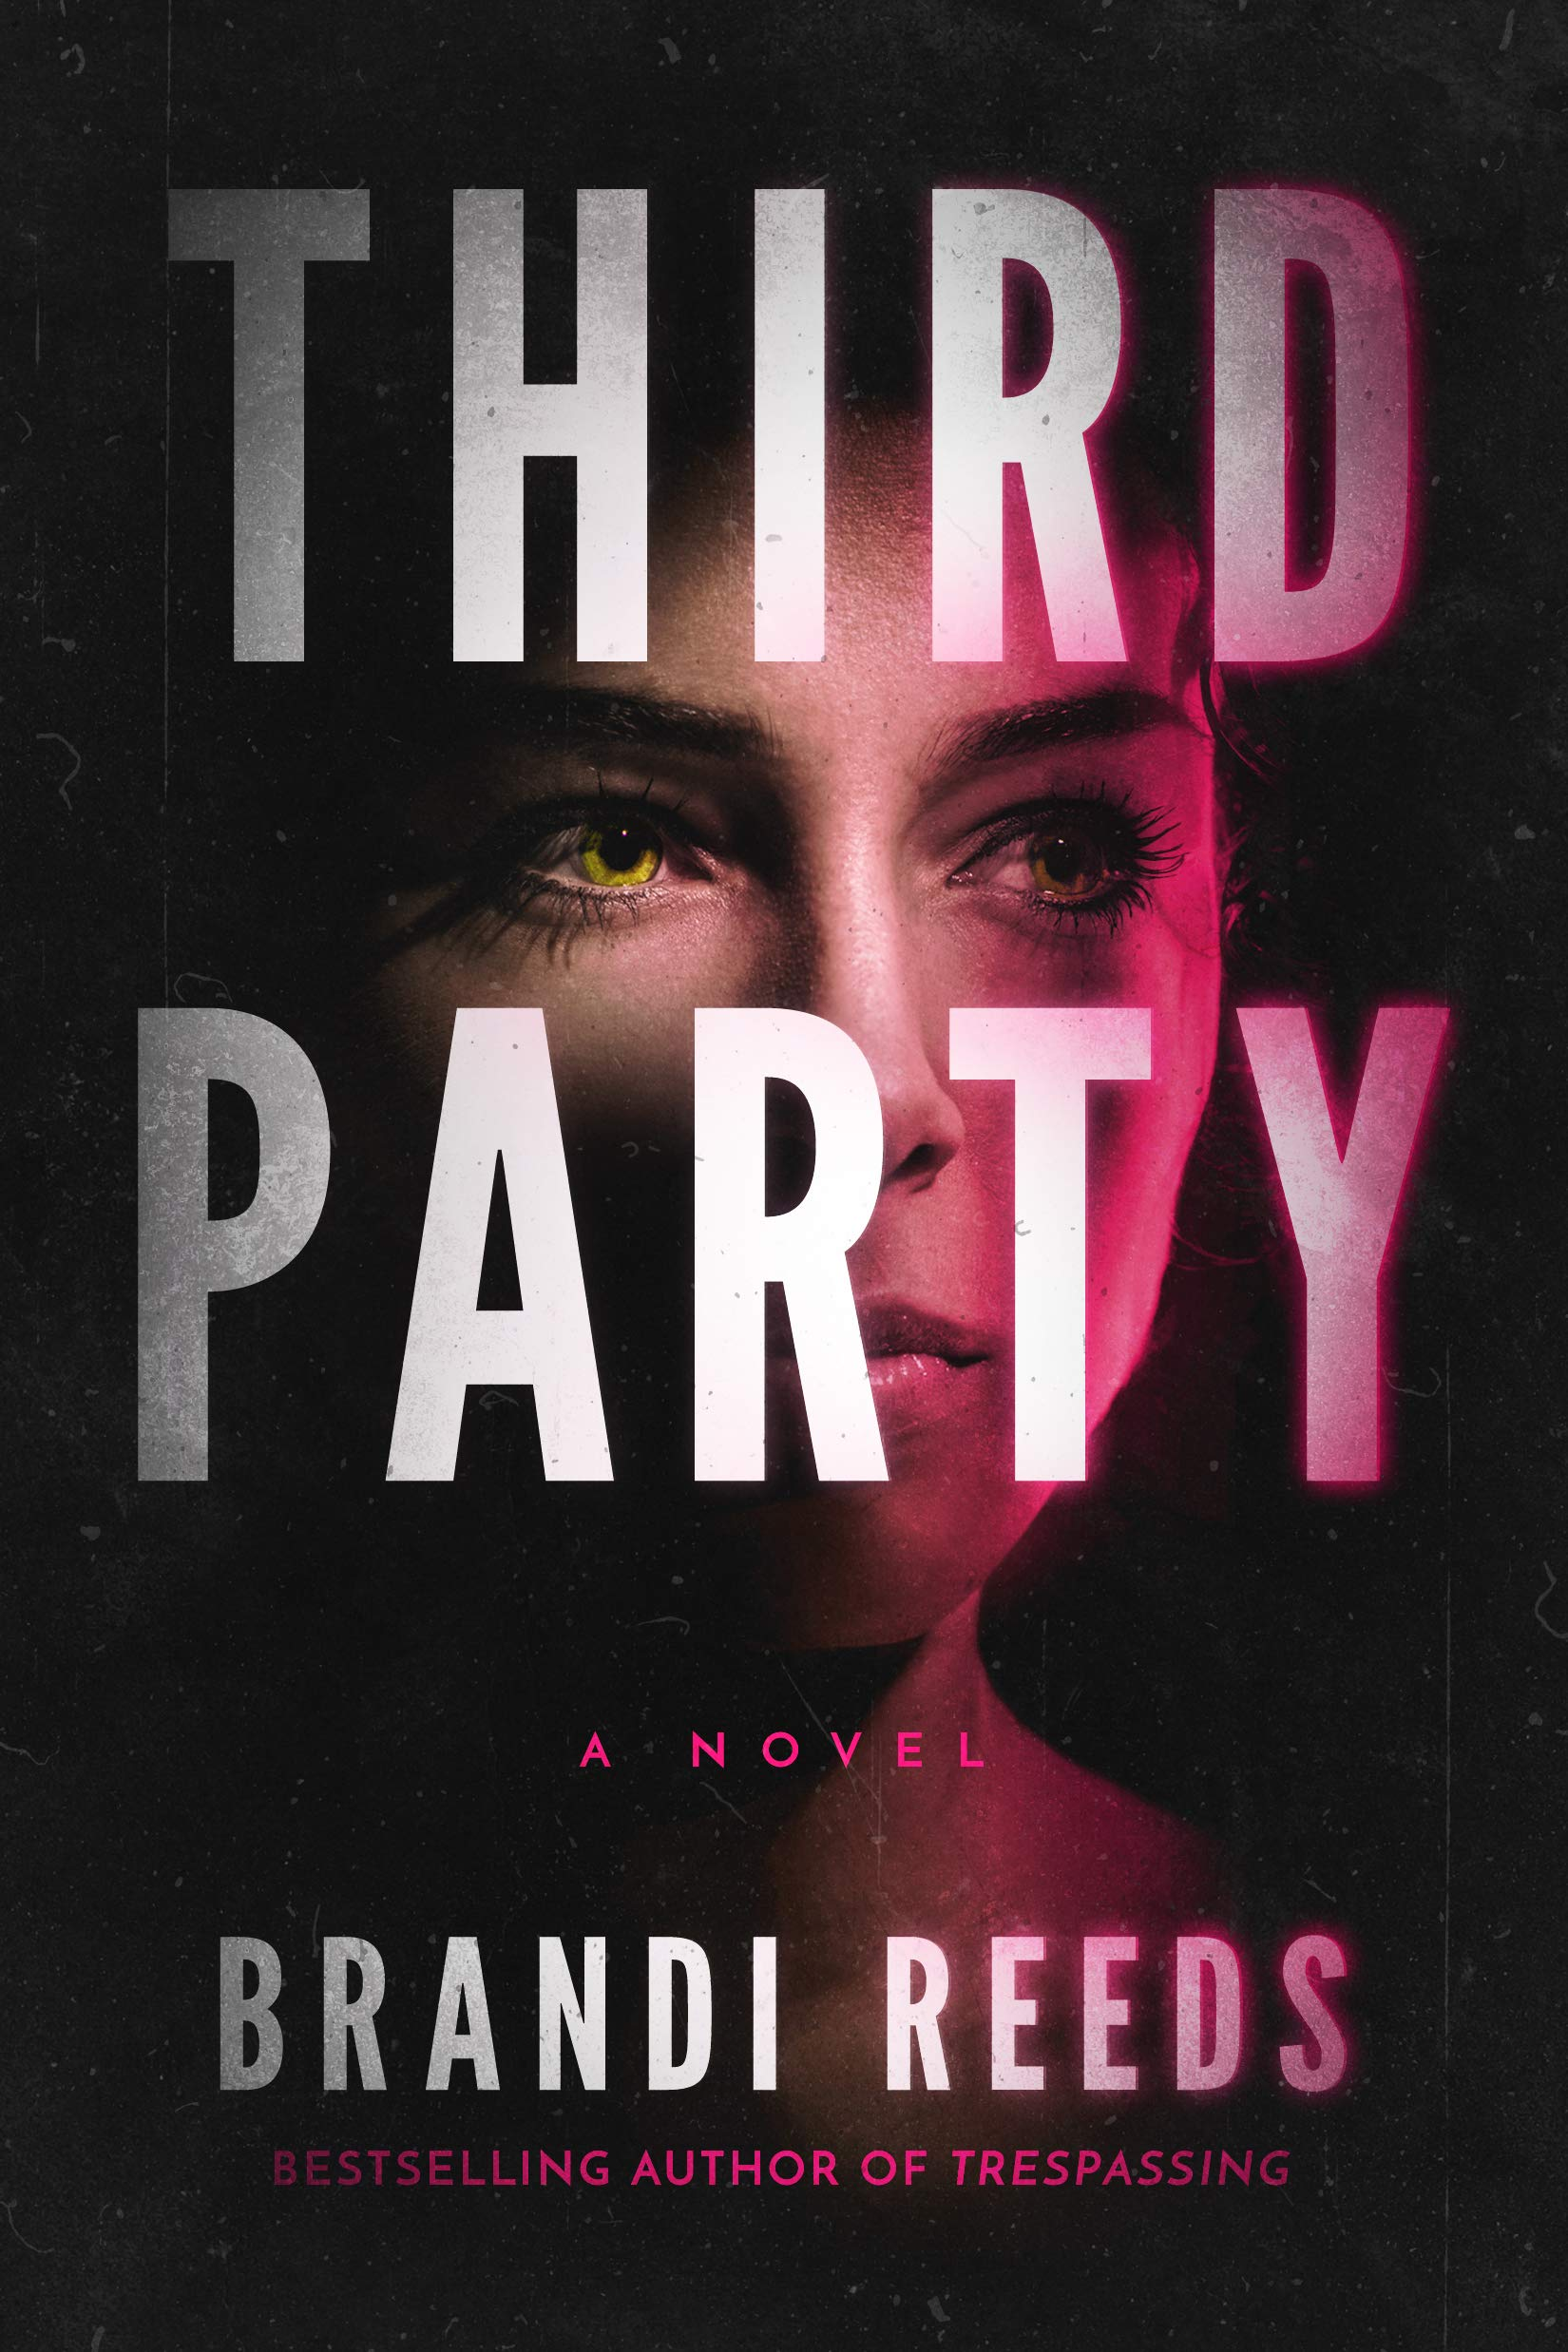 Image result for third party brandi reeds